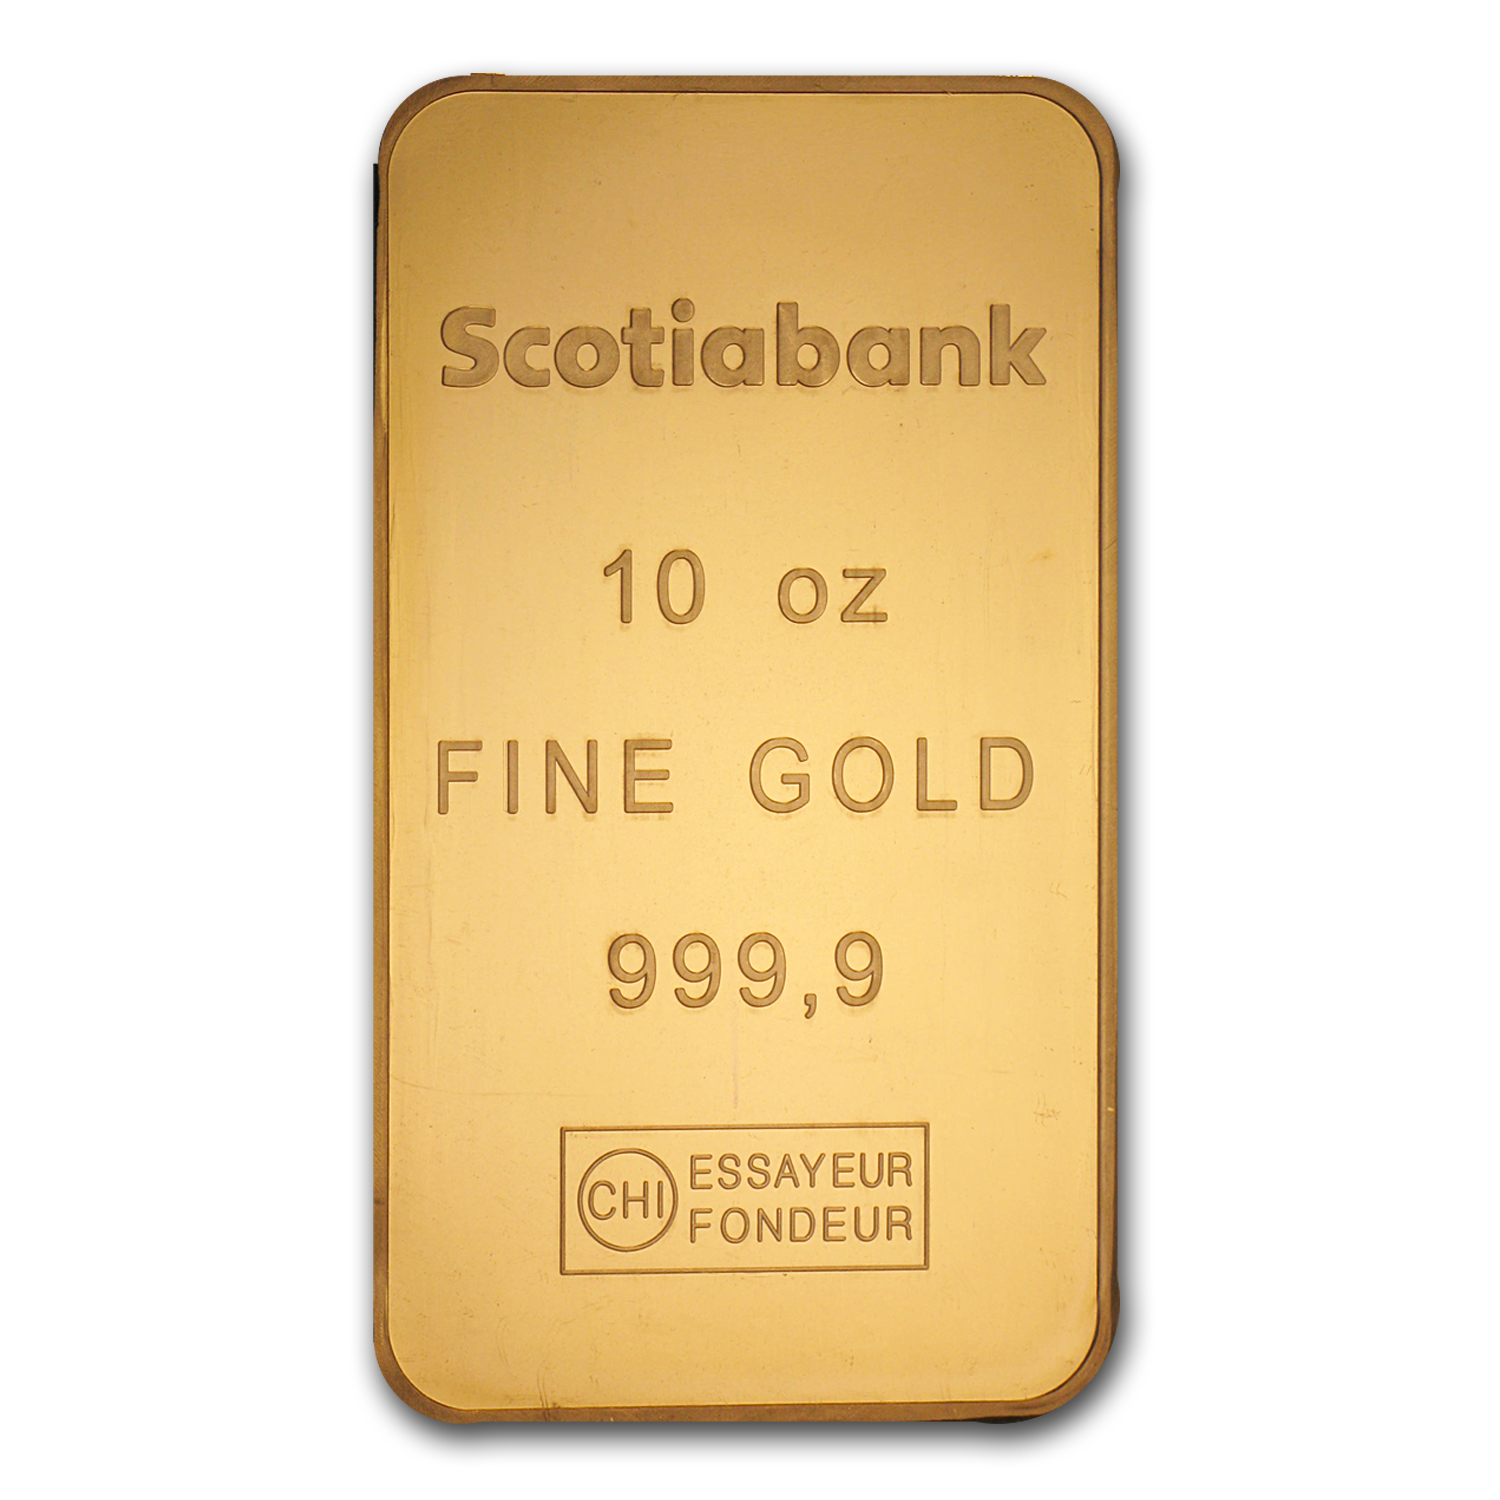 10 oz Gold Bar - Scotiabank